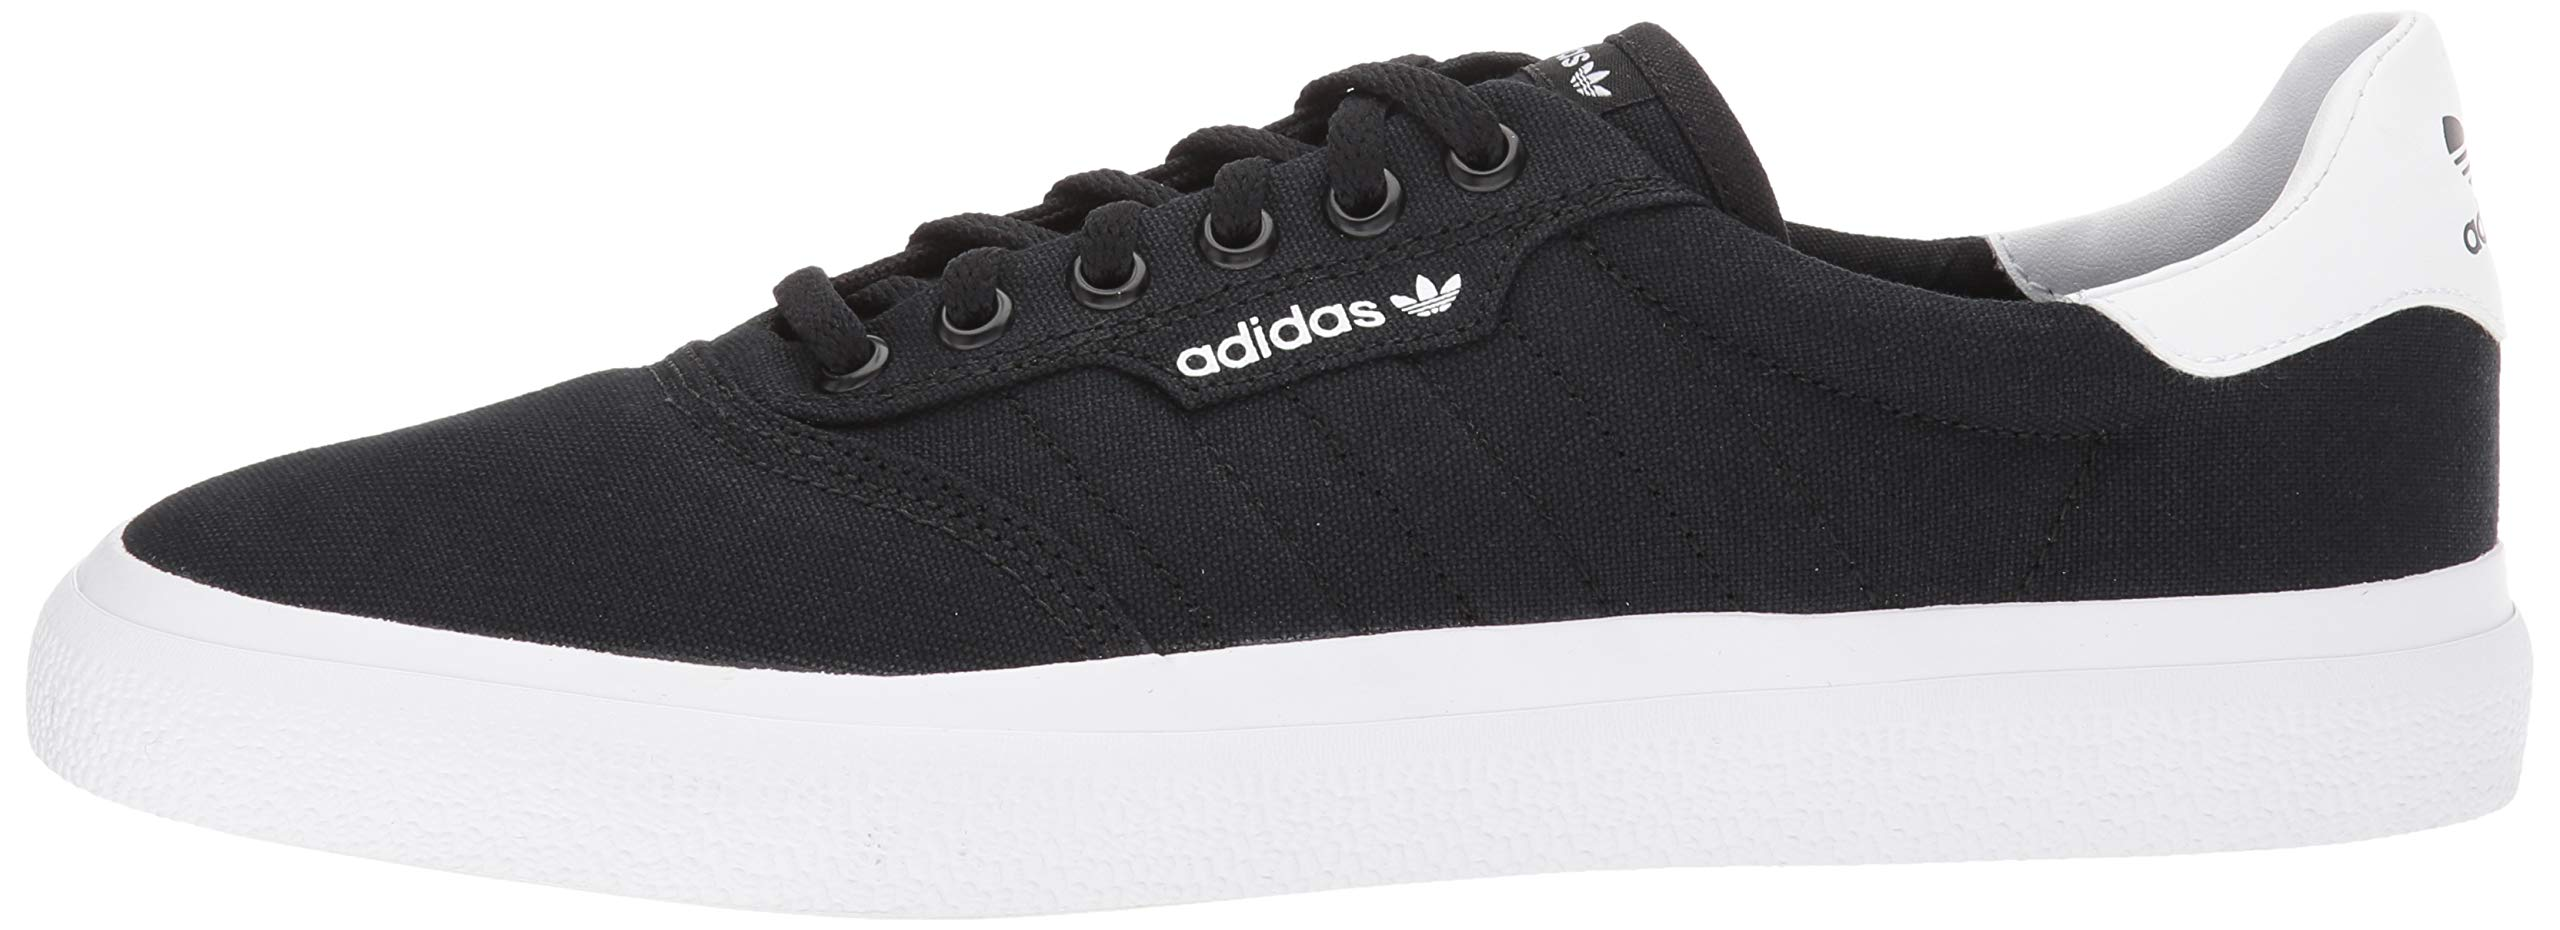 adidas Originals unisex-adult Black/White, 3 MC Skate Shoe 6.5 M US by adidas Originals (Image #5)